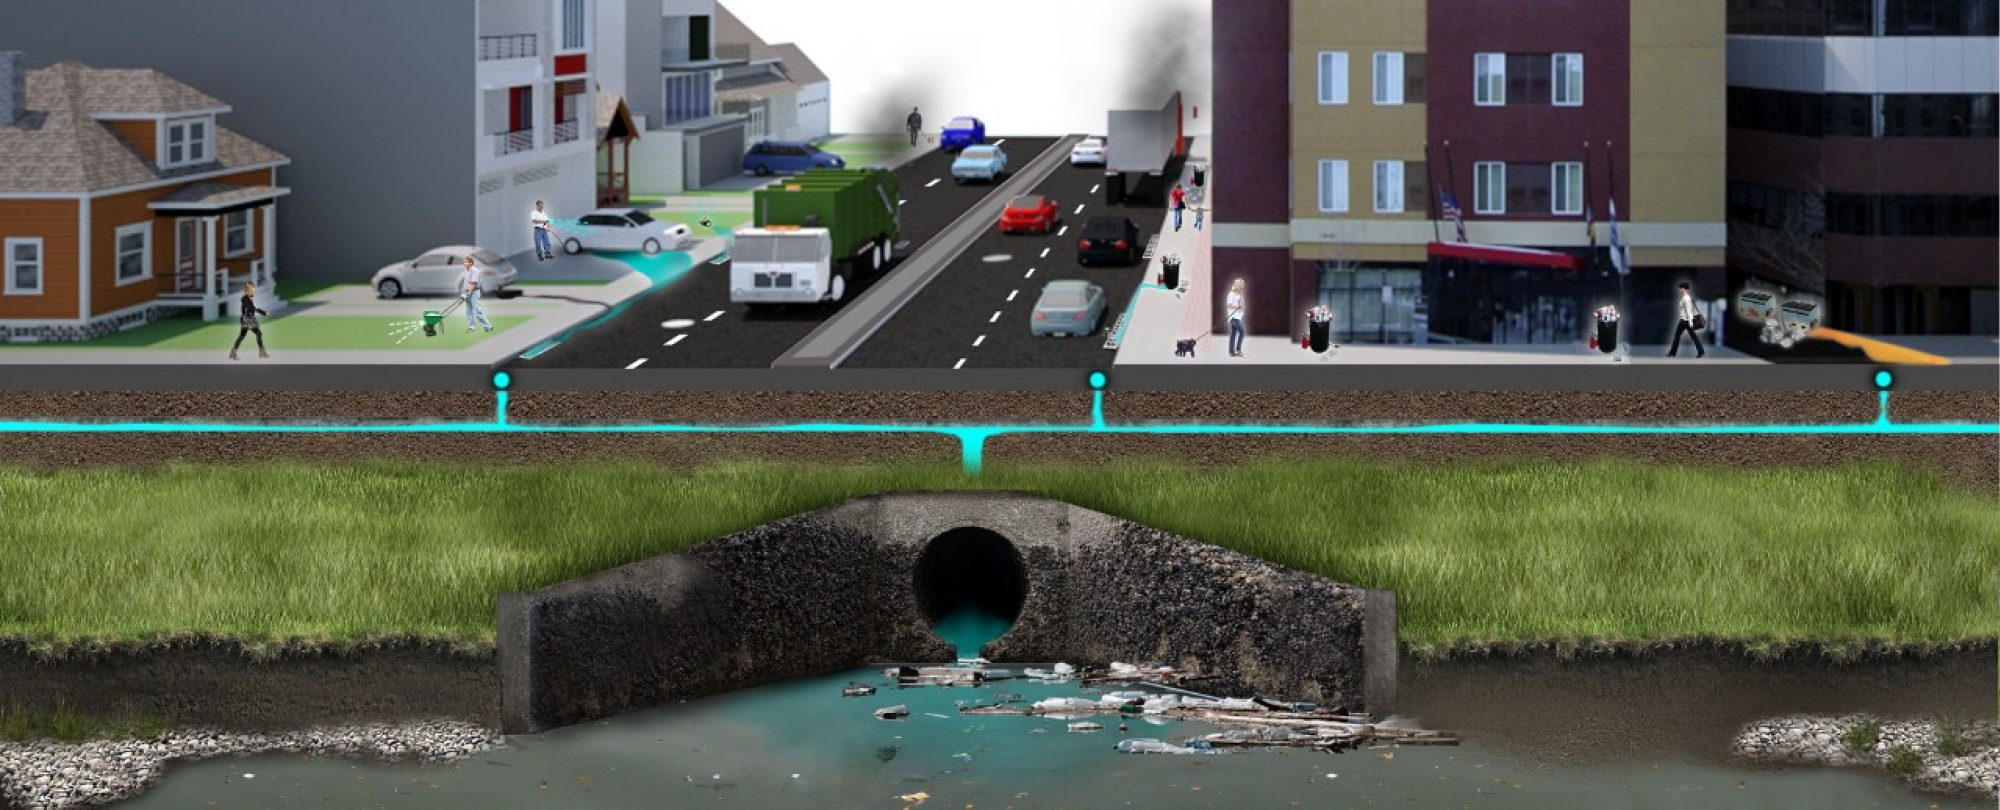 illustration of stormwater flow from street to river